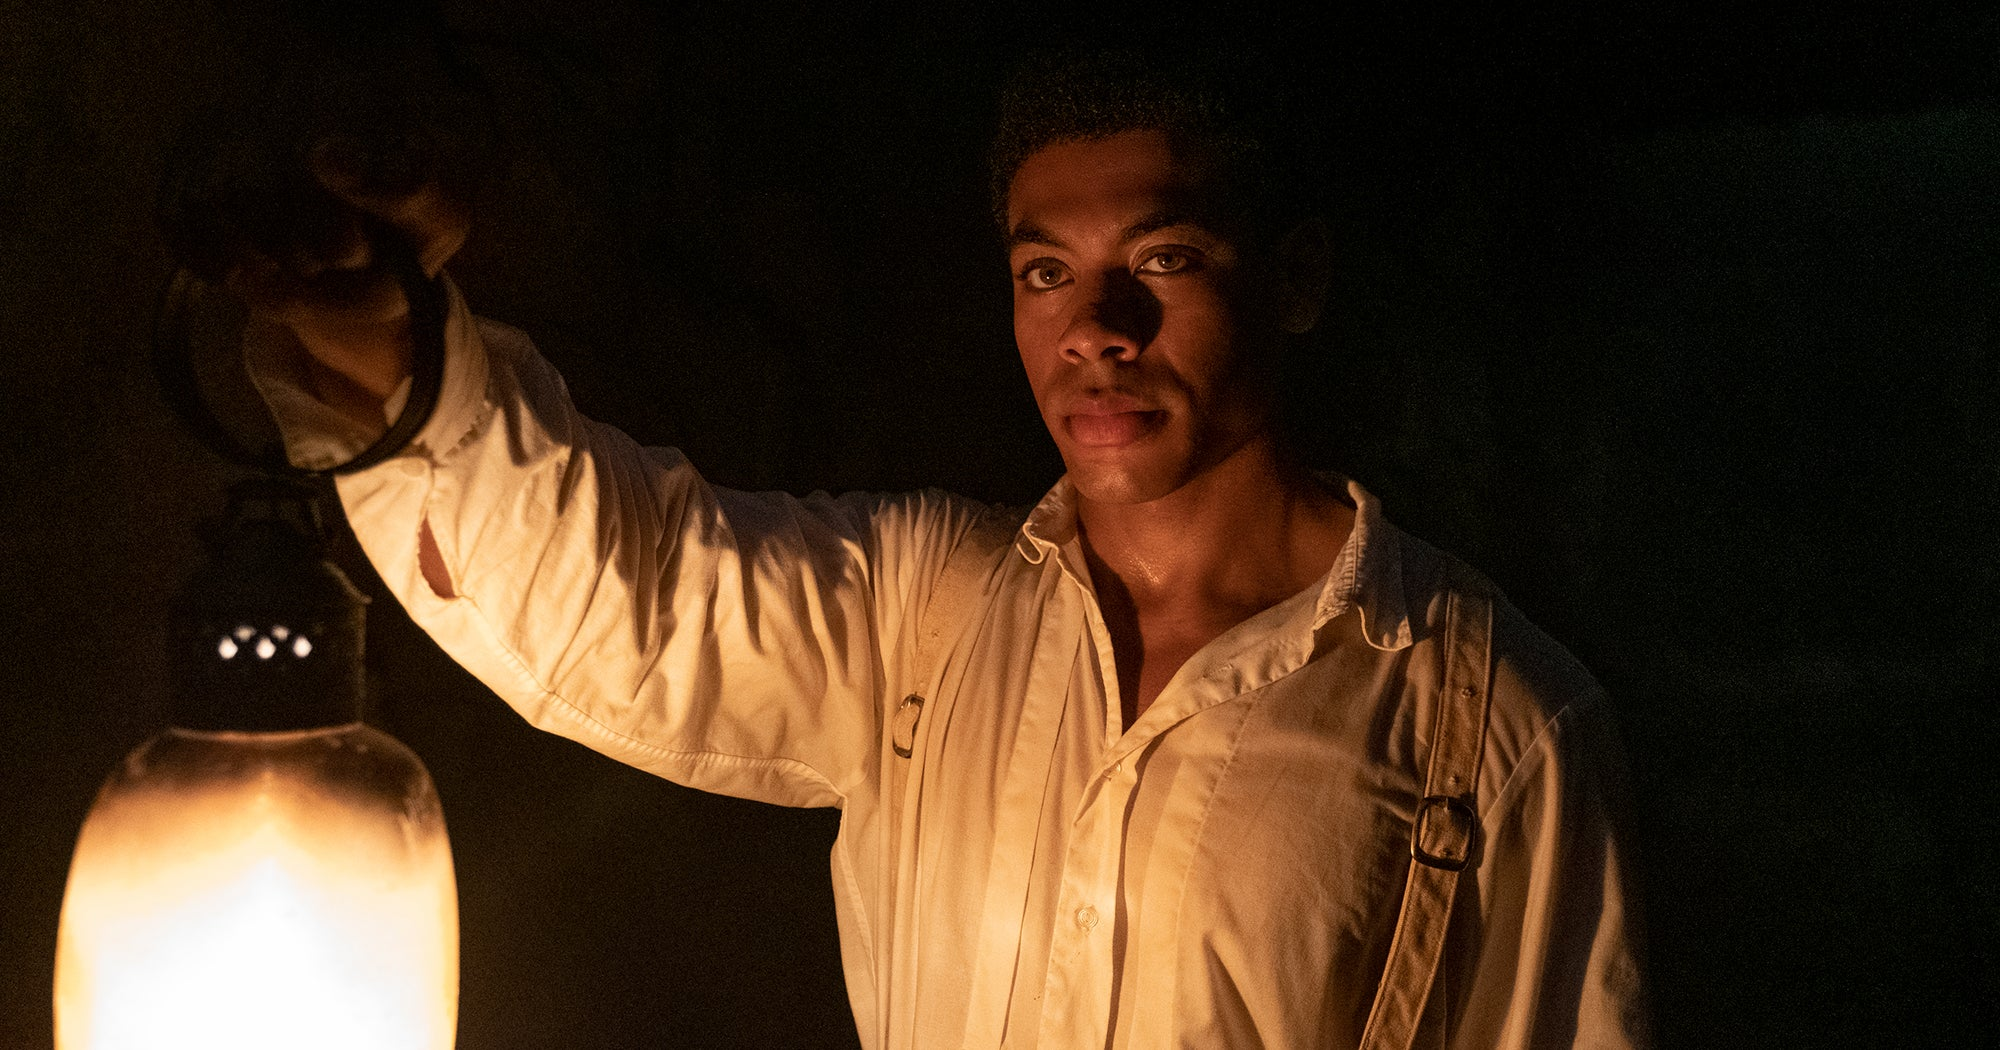 Meet The Cast Of Characters In Amazon's The Underground Railroad